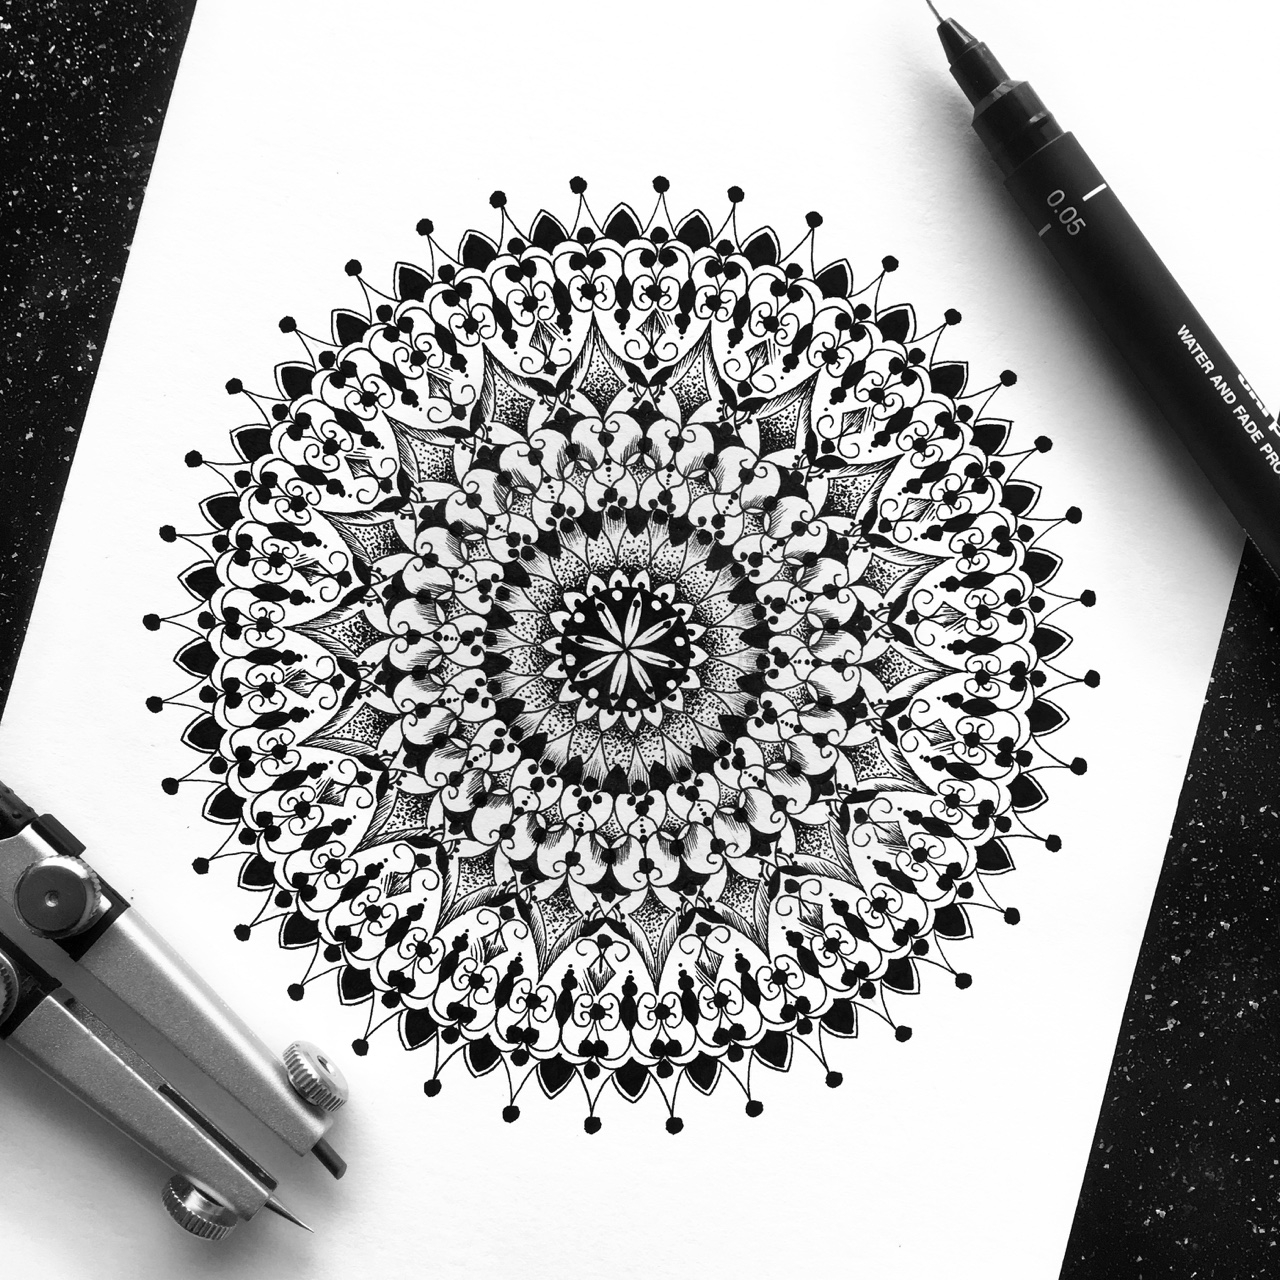 01-Back-to-Black-Dilrani-Kauris-Symmetry-and-Style-in-Mandala-and-Mehndi-Drawings-www-designstack-co